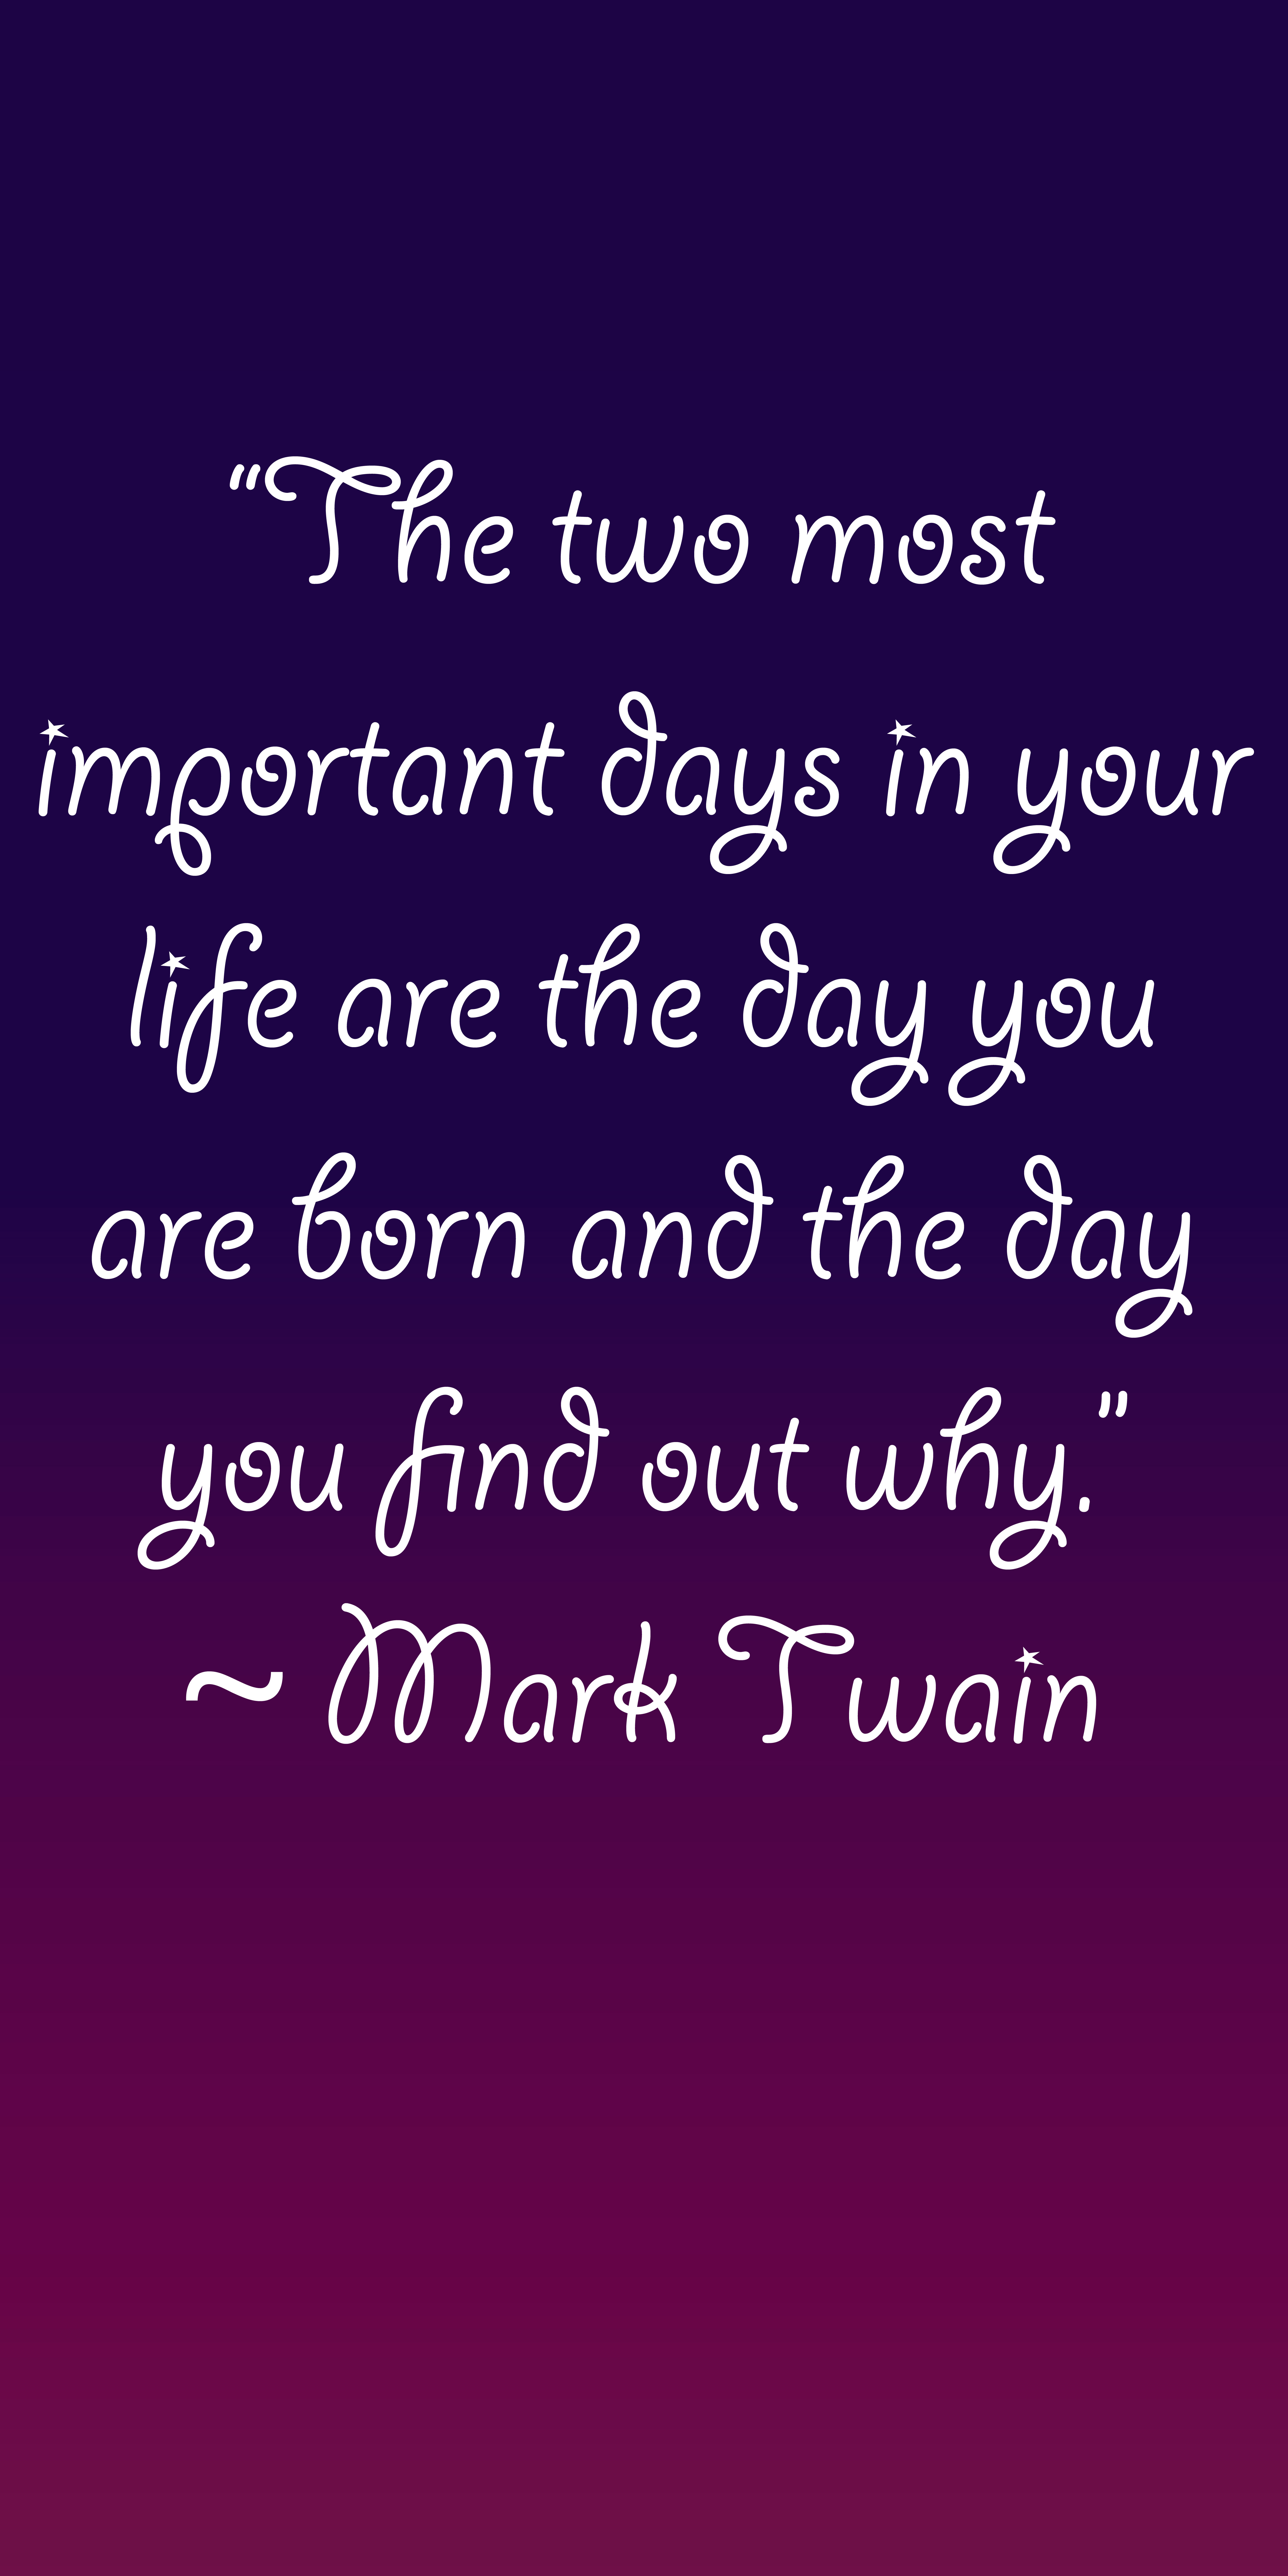 """""""The two most important days in your life are the day you are born and the day you find out why."""" - Mark Twain quote written on a painterly background."""